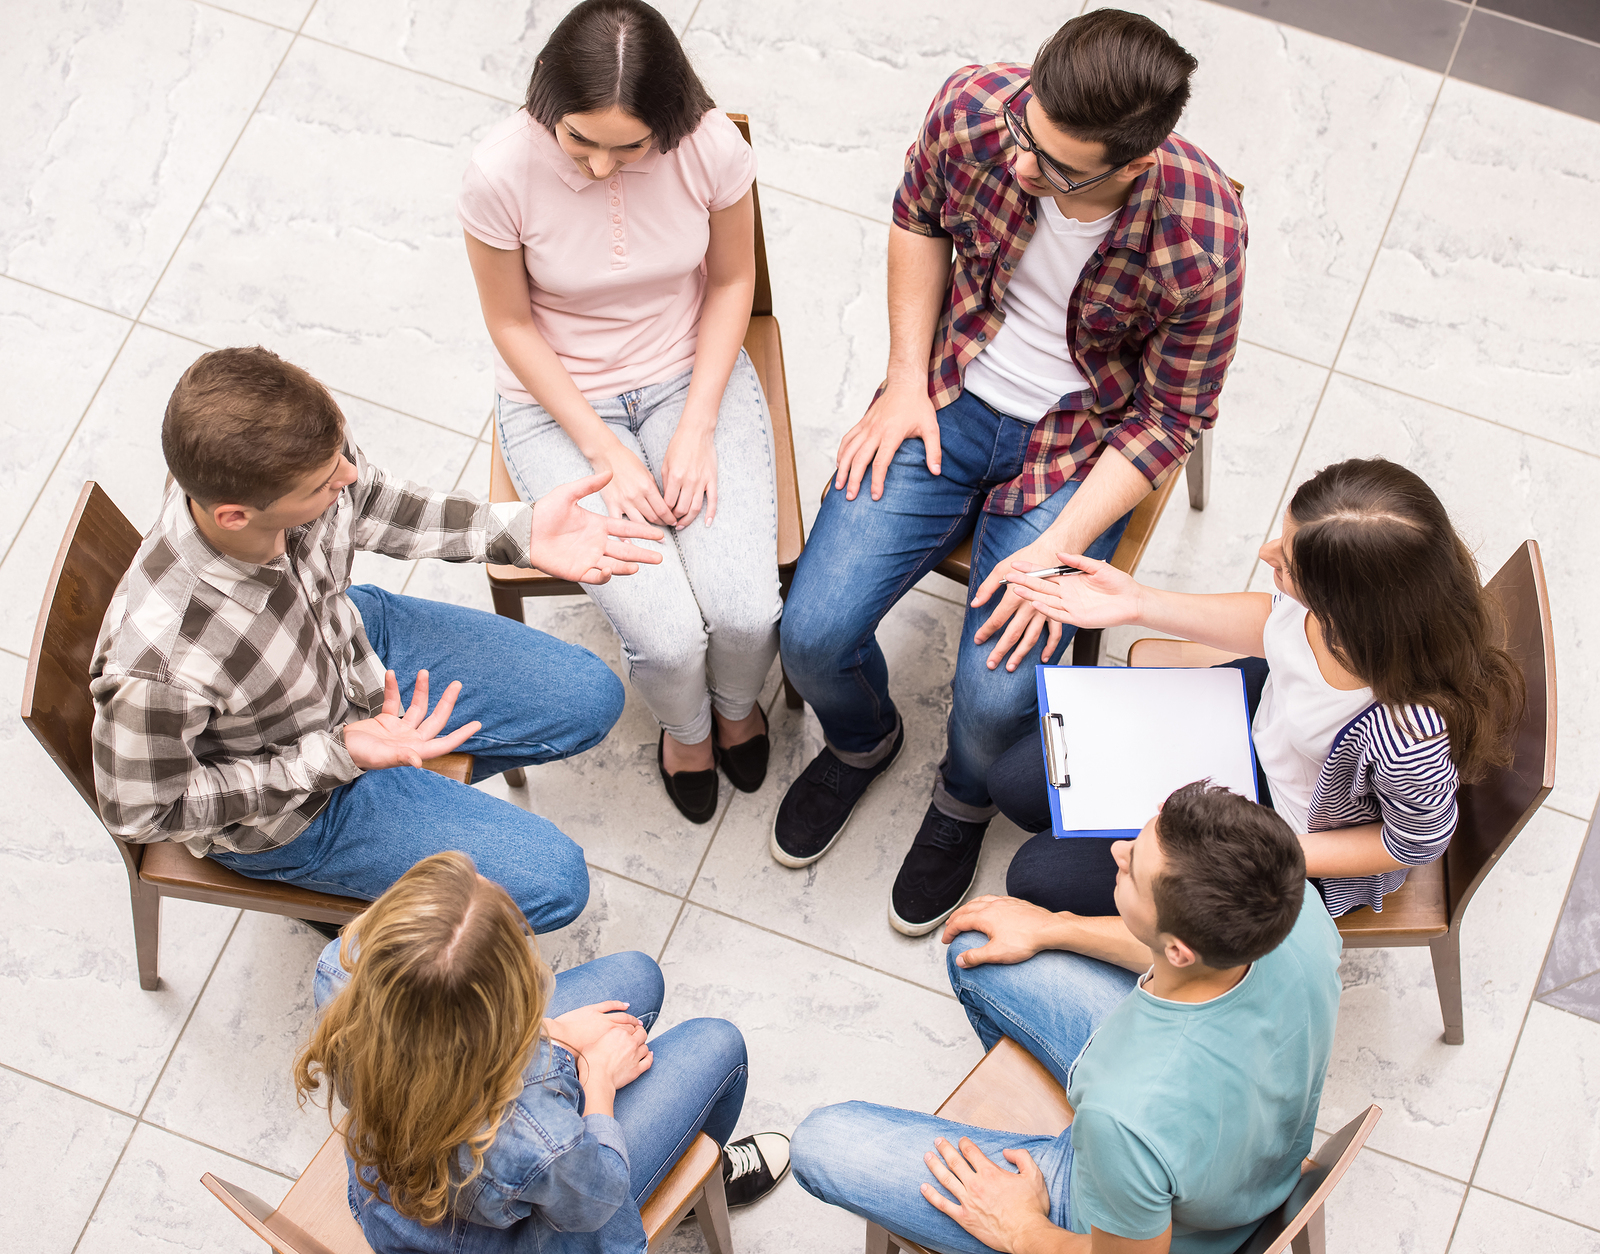 PEERS Group Therapy